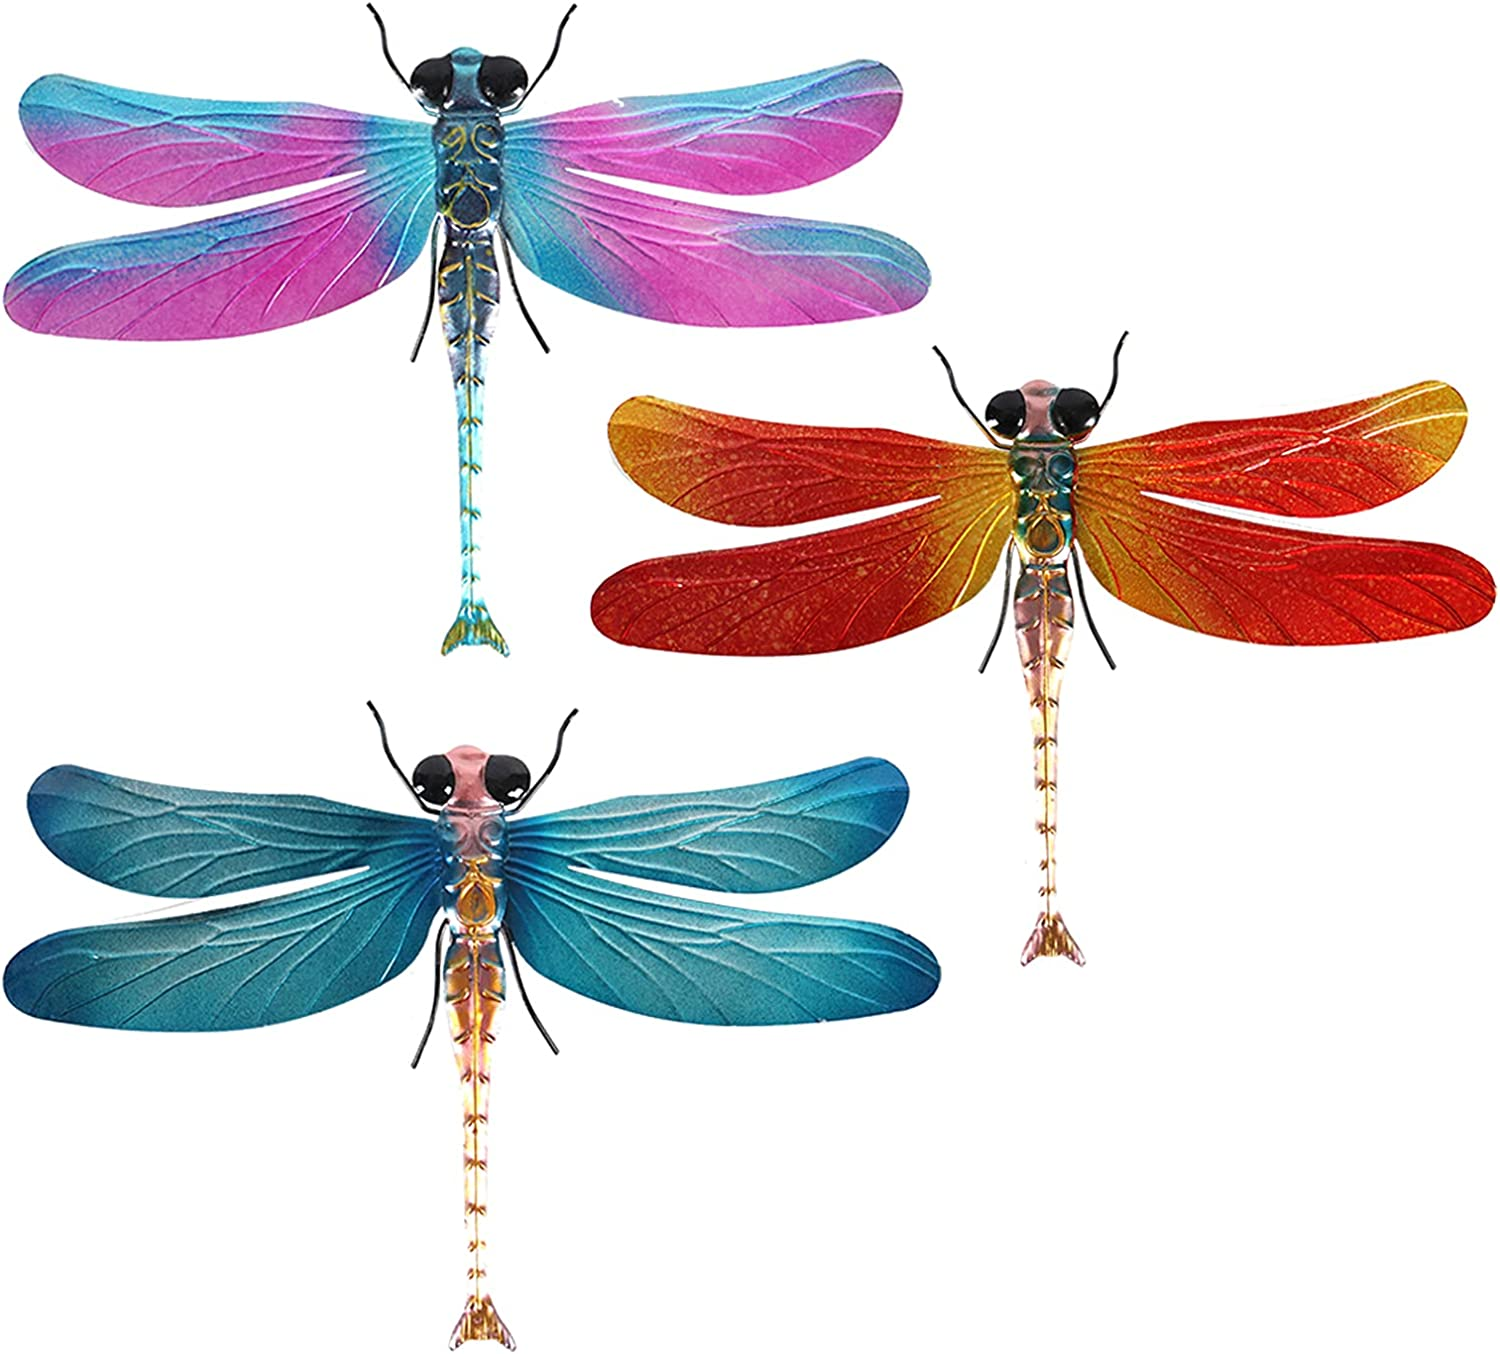 XIUDEEN Metal Dragonfly Outdoor Wall Decor, Set of 3 Dragonfly Metal Wall Art for Deck Decor, Garden Shed, Fence, Yard, Patio, Porch, Bedroom, Living Room, Indoor or Outdoor Decorations